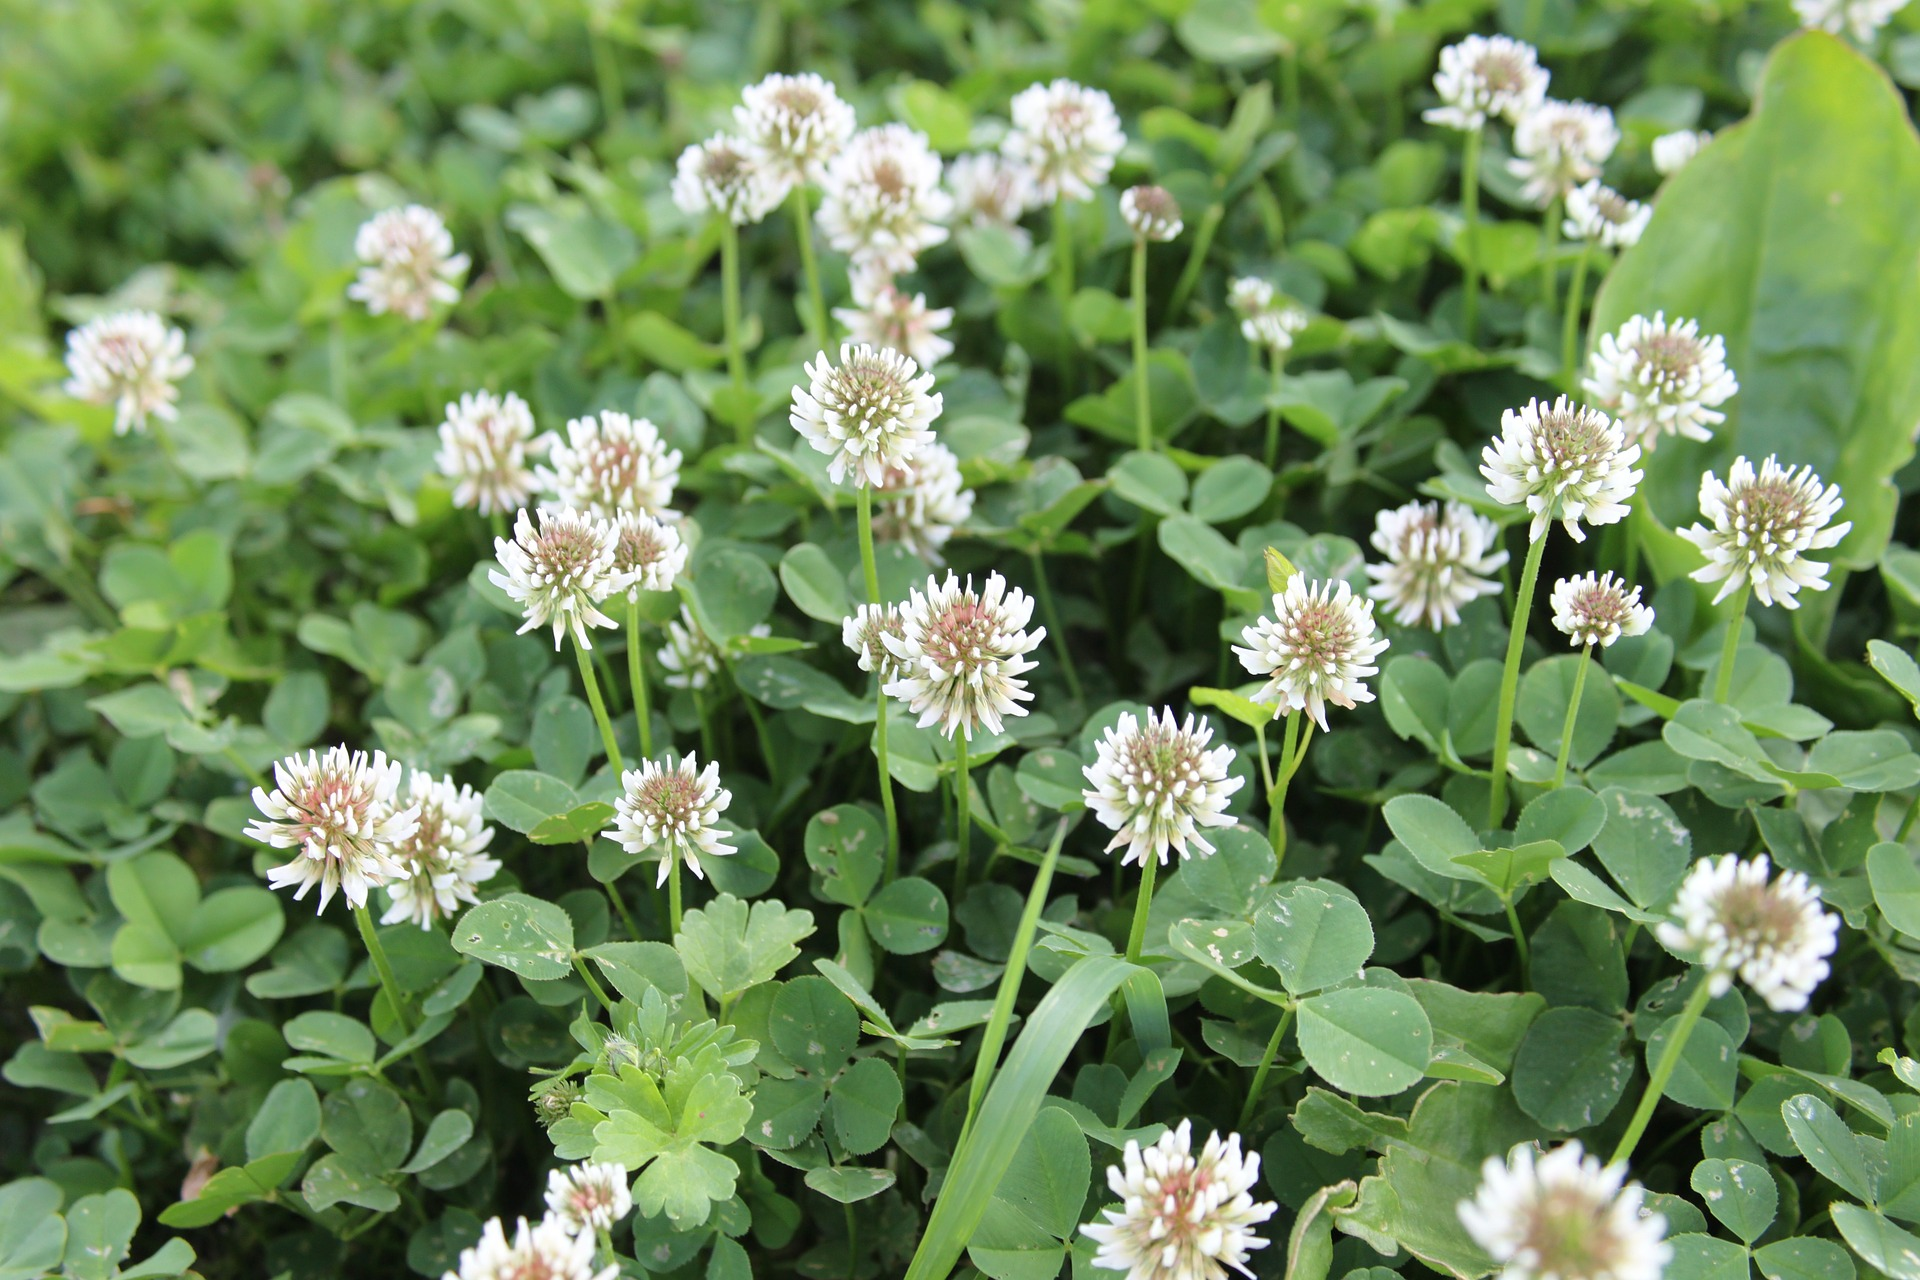 Growing A Clover Lawn The Old Farmers Almanac